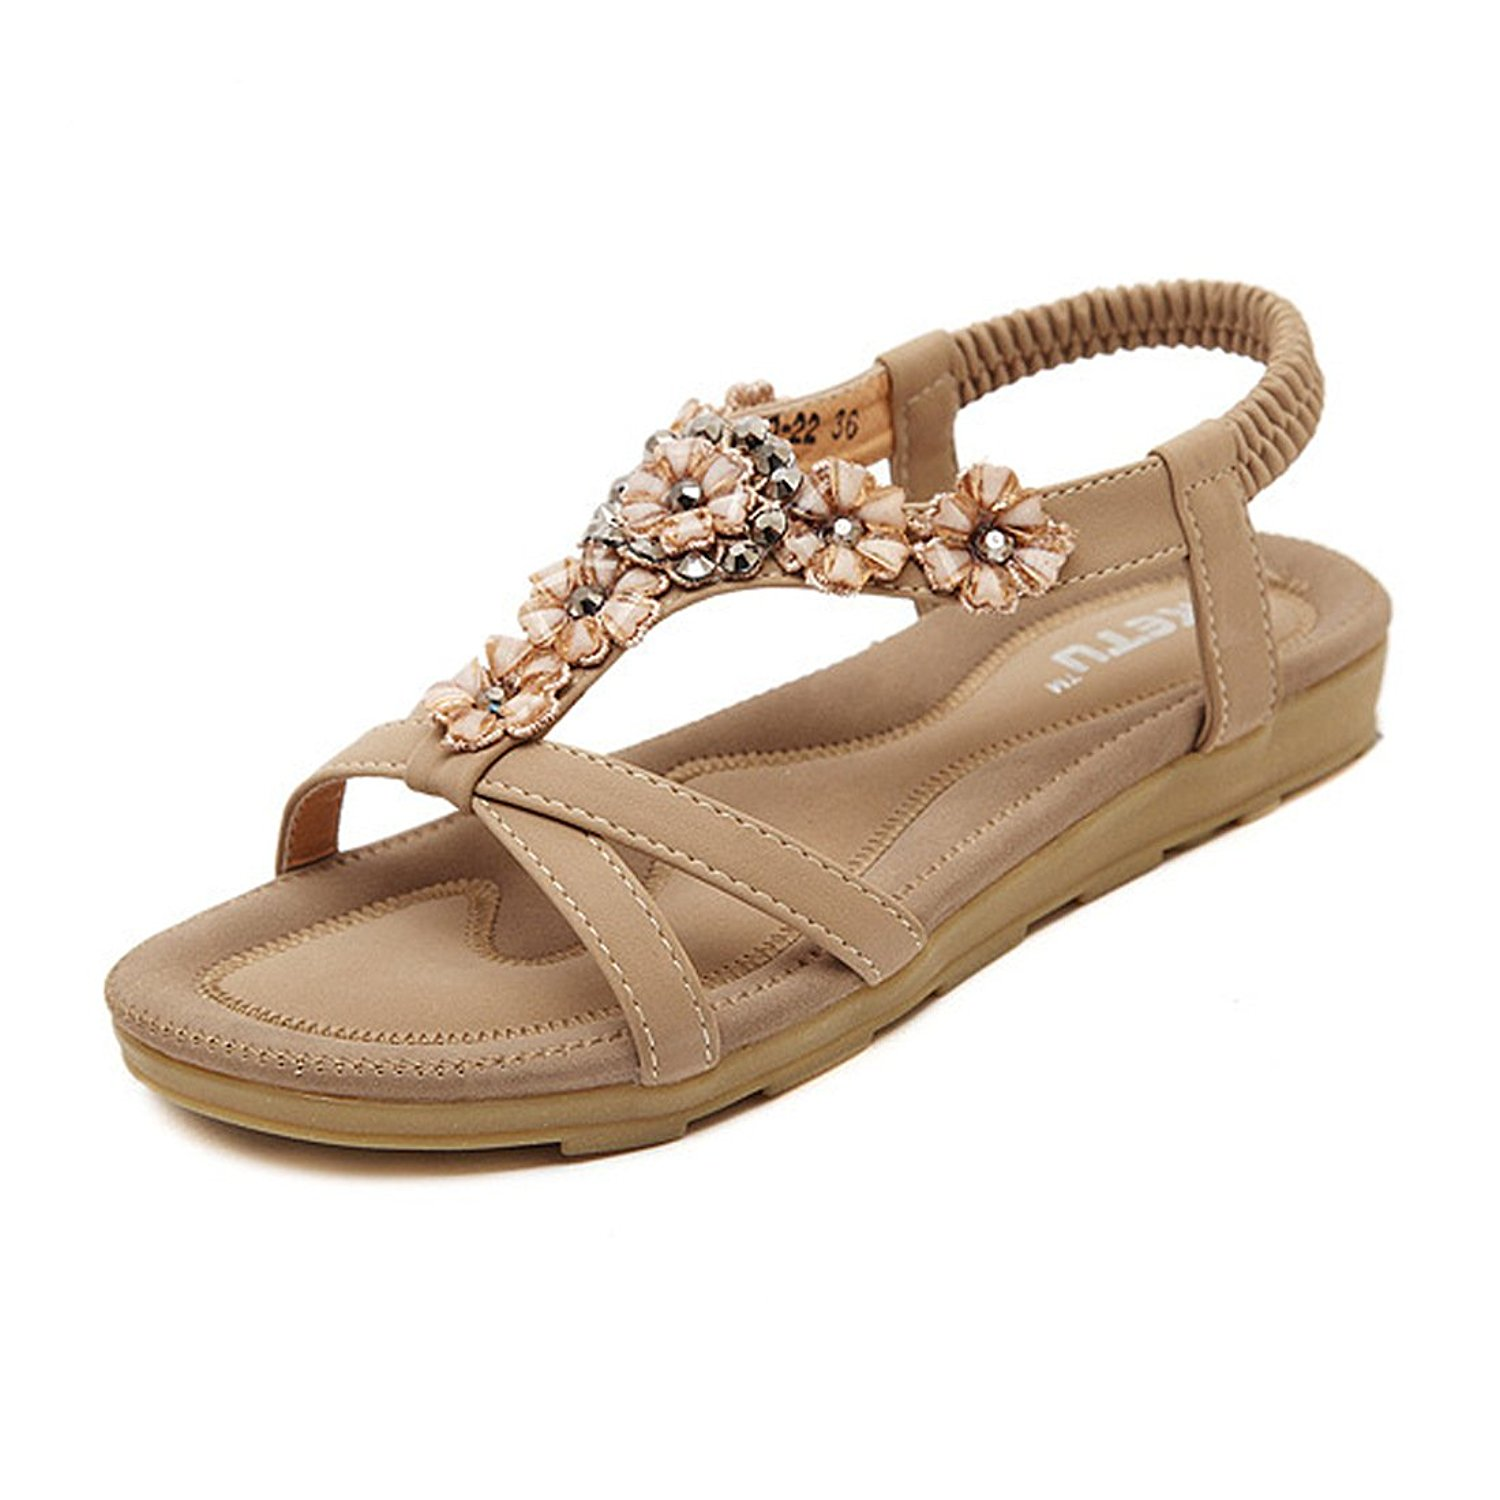 5356c29d7ffec Get Quotations · Temofon Summer Women s Sandals Braided T-Strap Gladiator  Bohemian Beaded Flower Rhinestone Flat Beach Flip